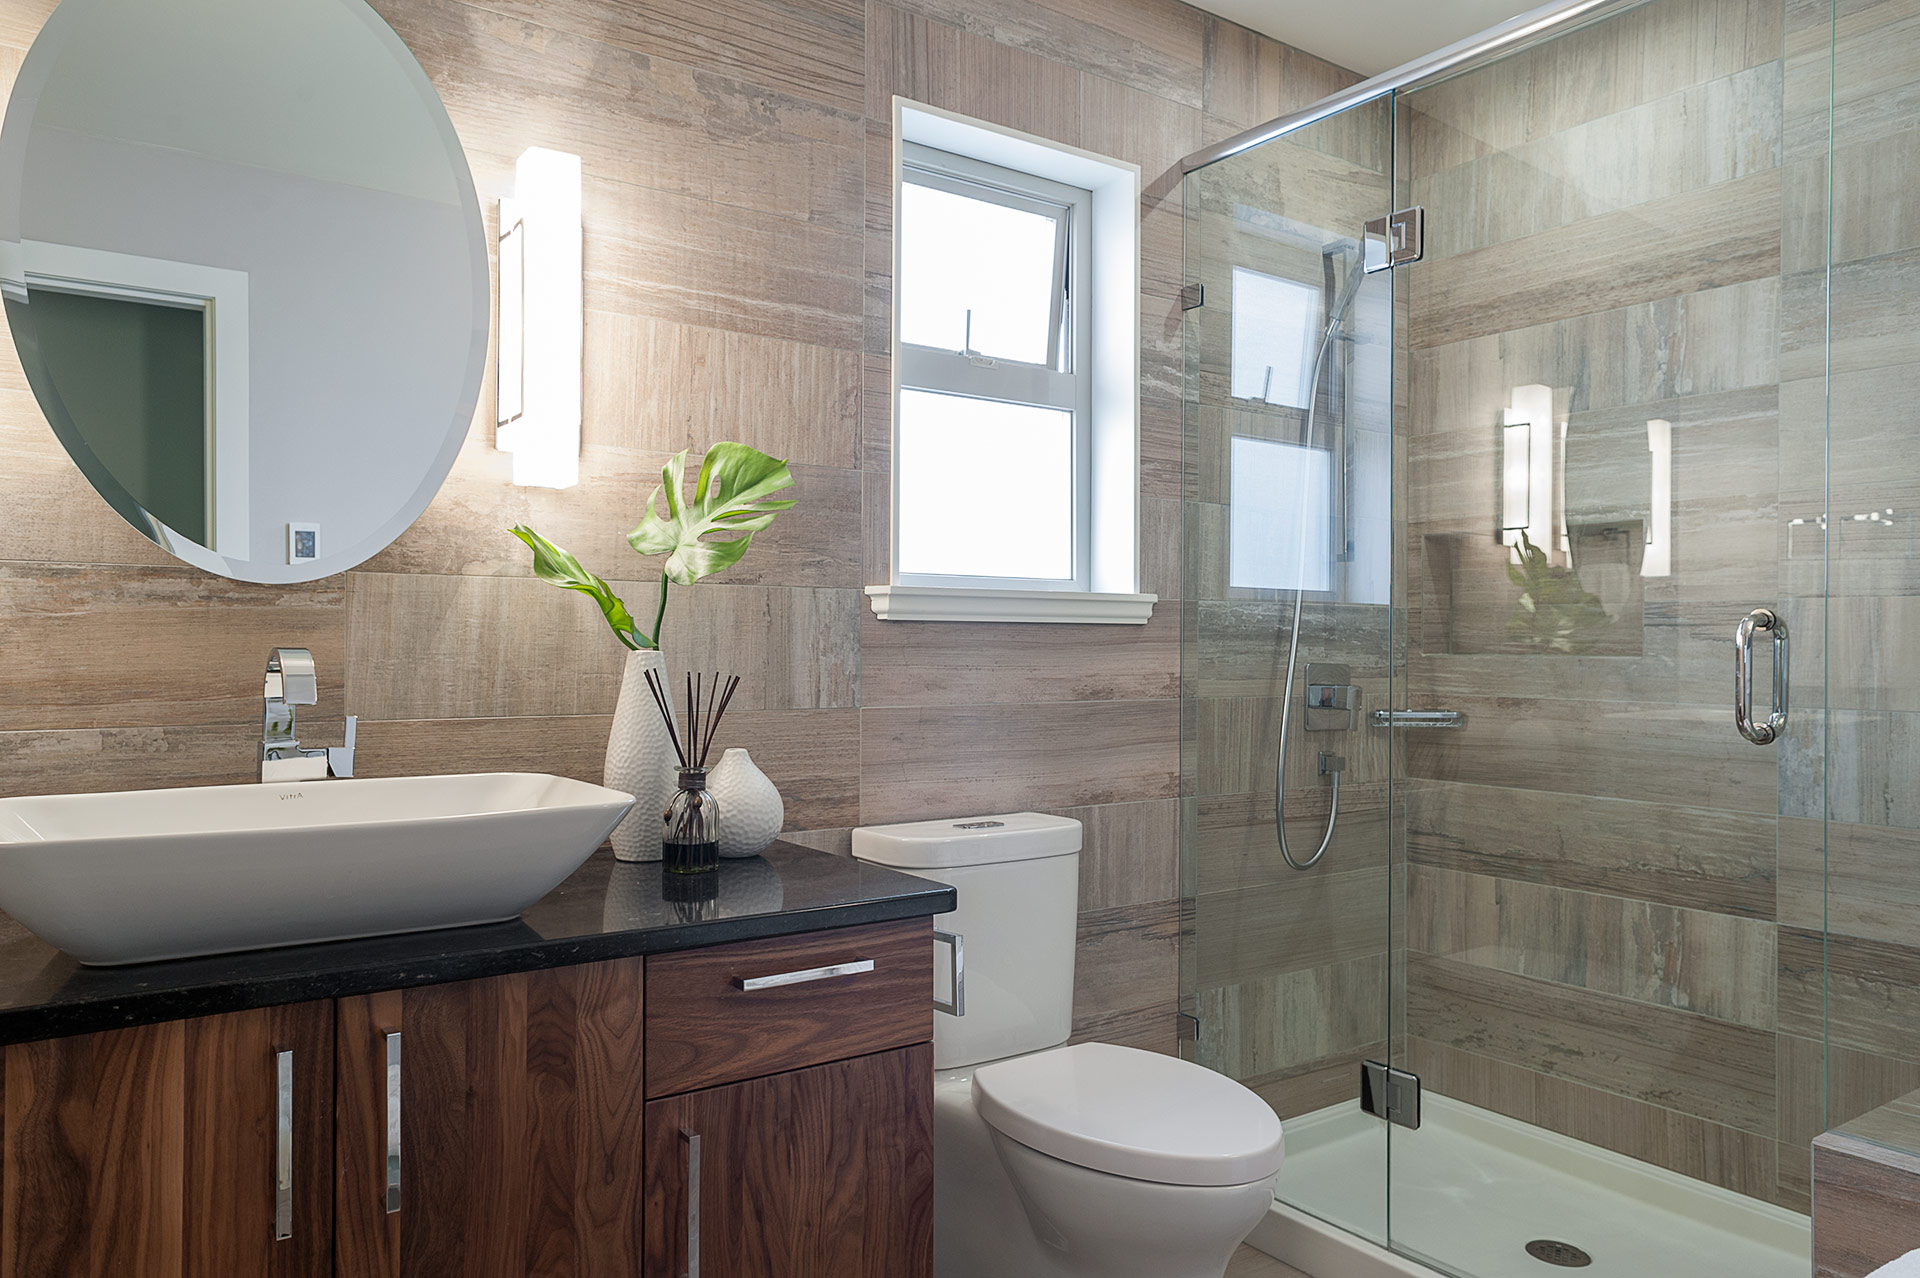 Property Brothers Designs Small Bathroom Renovation Loaded With Style Modern Home